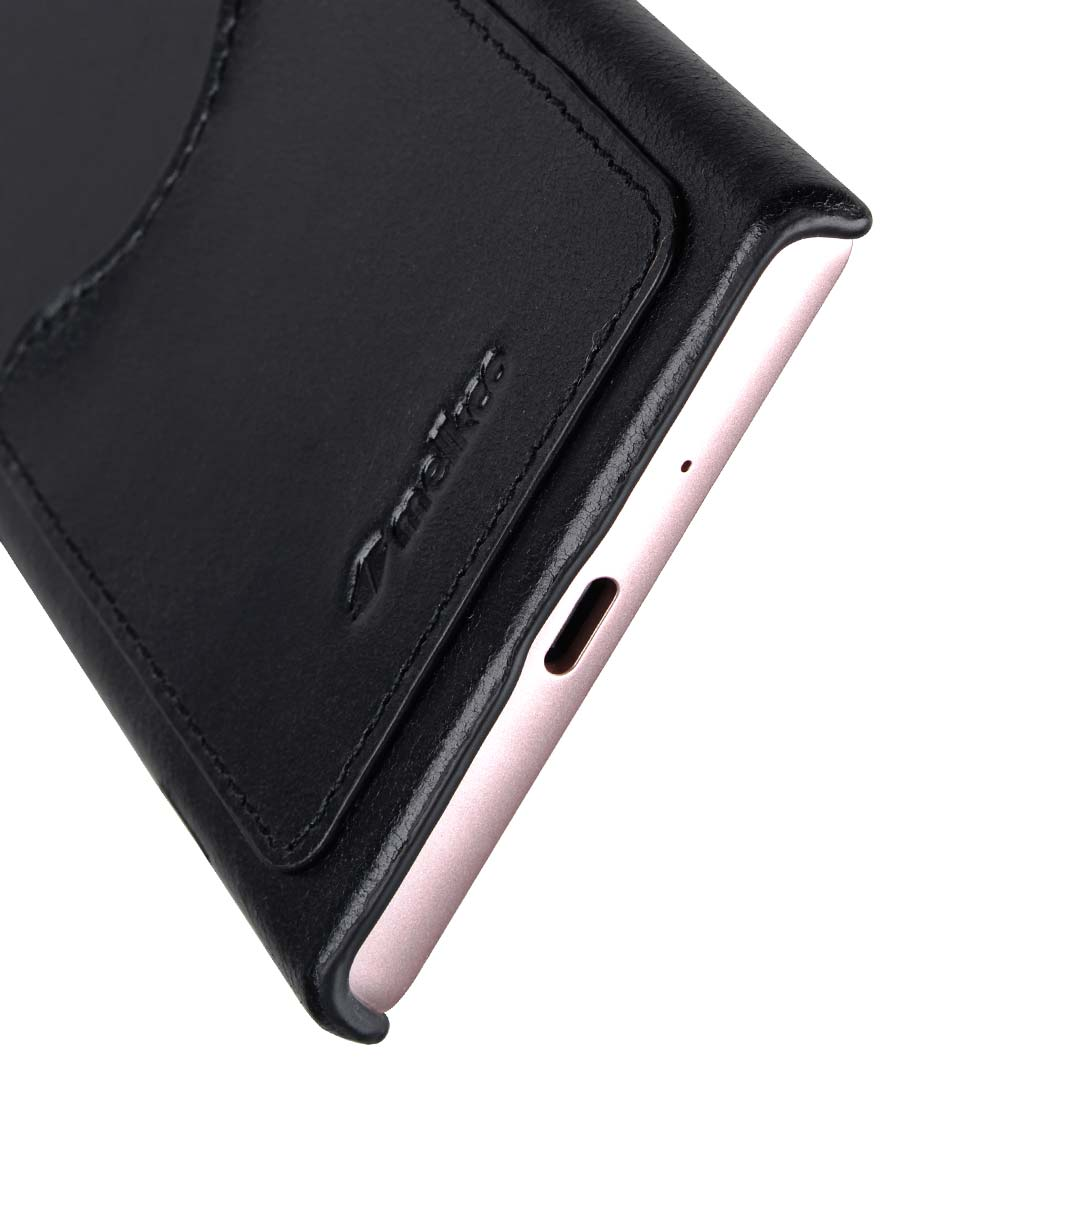 new products 8b8d9 5a3e4 Premium Leather Card Slot Cover Case for Sony Xperia XZ1 Compact